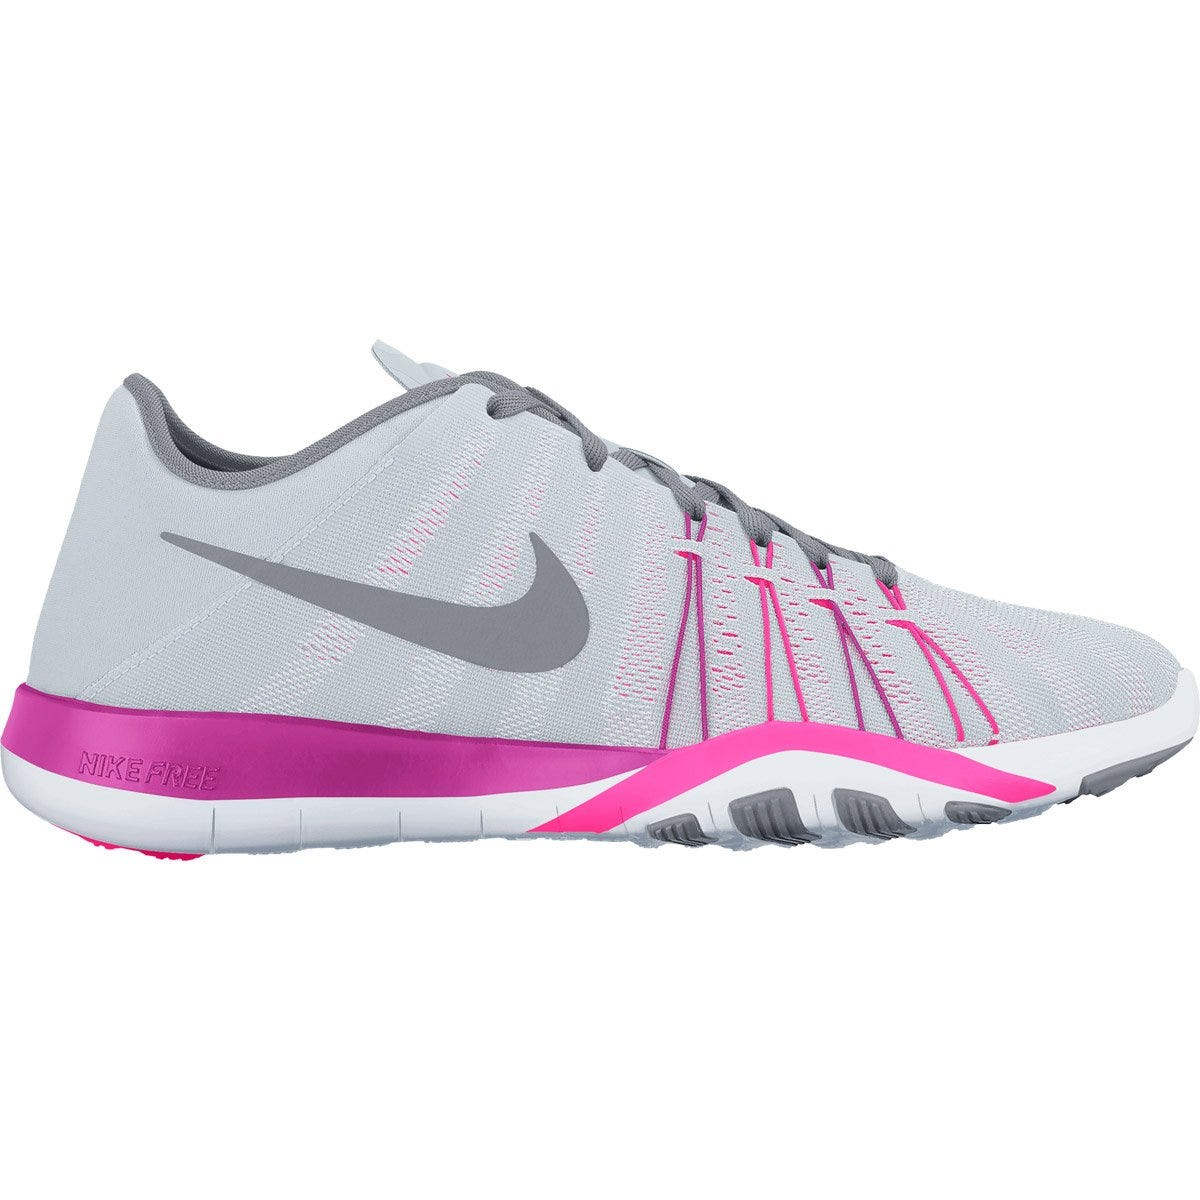 Nike Free TR 6 Women's Training Shoes - Pure Platinum/Stealth/Pink Bla